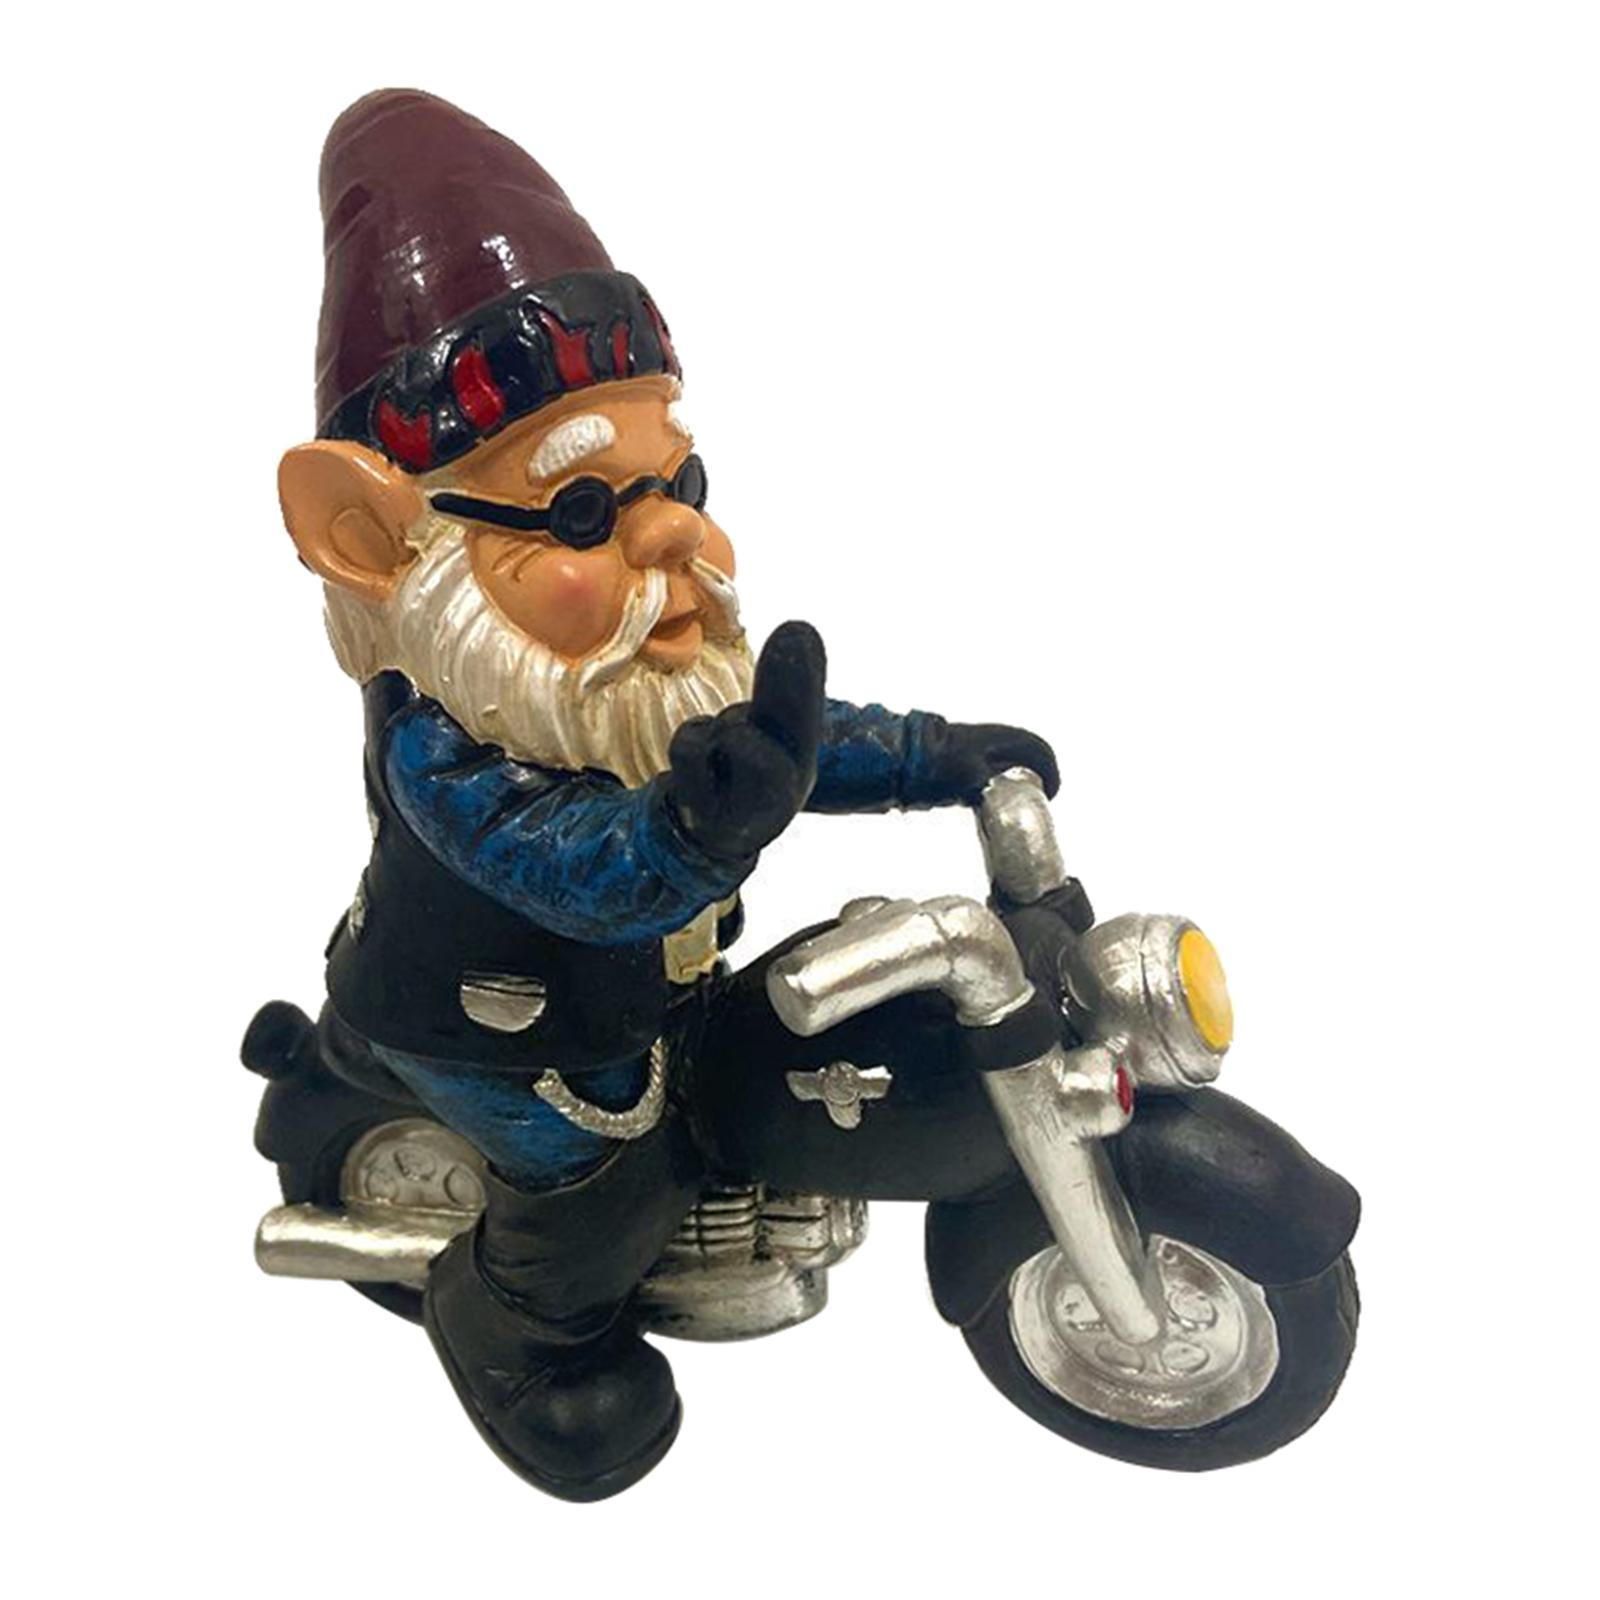 thumbnail 25 - Garden Gnome Statue Small Resin Lawn Gnome Scuplture Funny Indoor Outdoor Decor